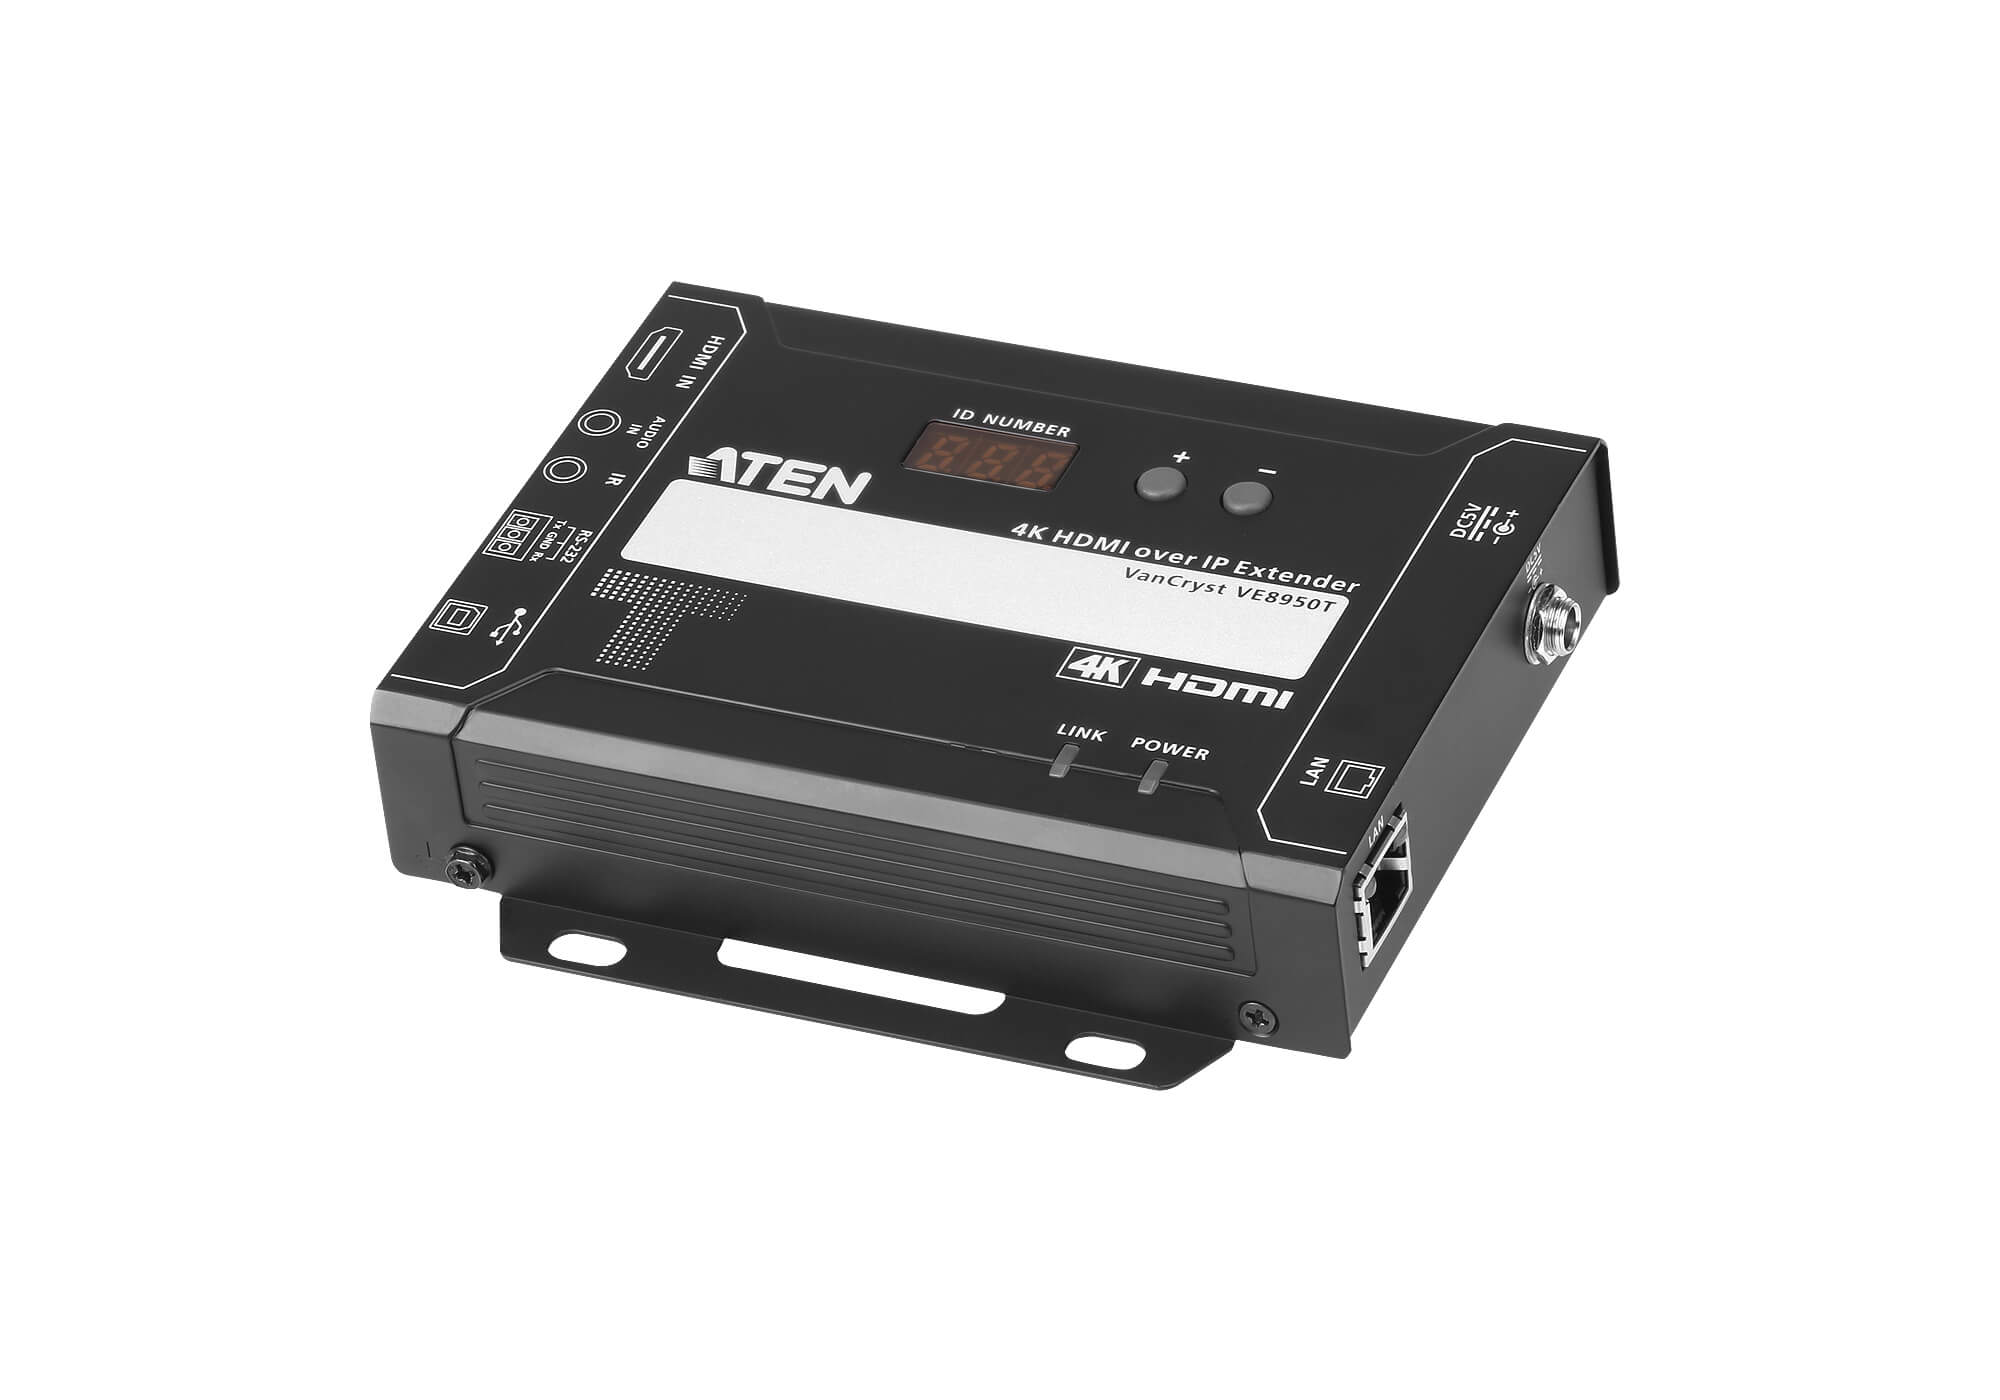 ATEN VanCryst 4K HDMI over IP Transmitter